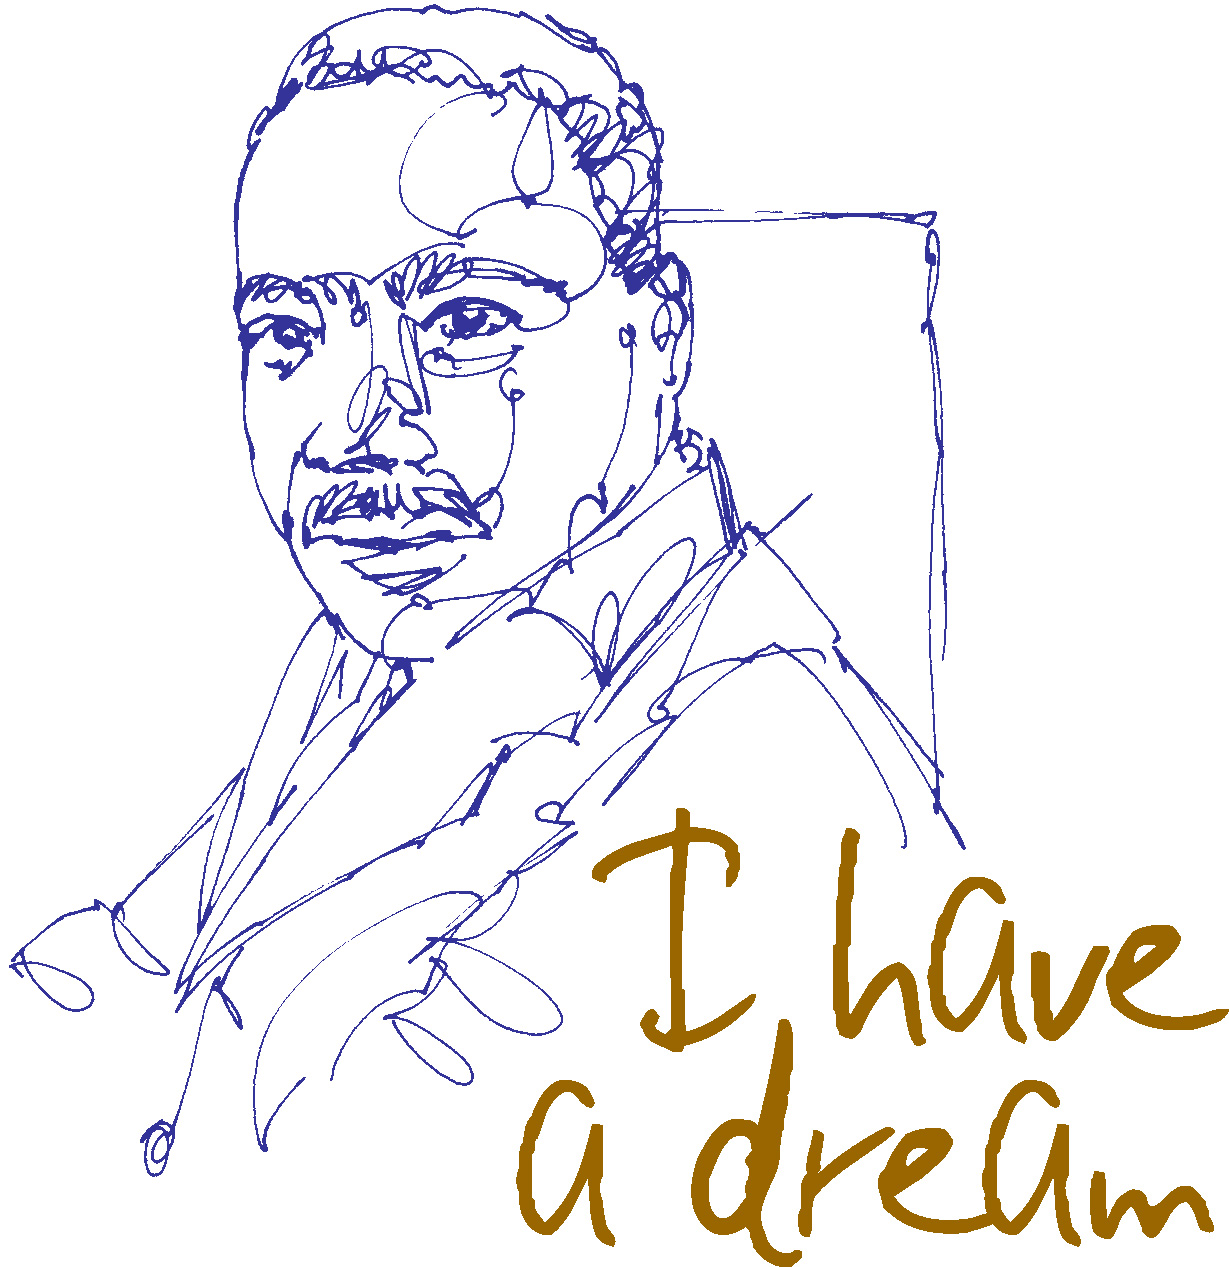 clip art martin luther king jr day - photo #17